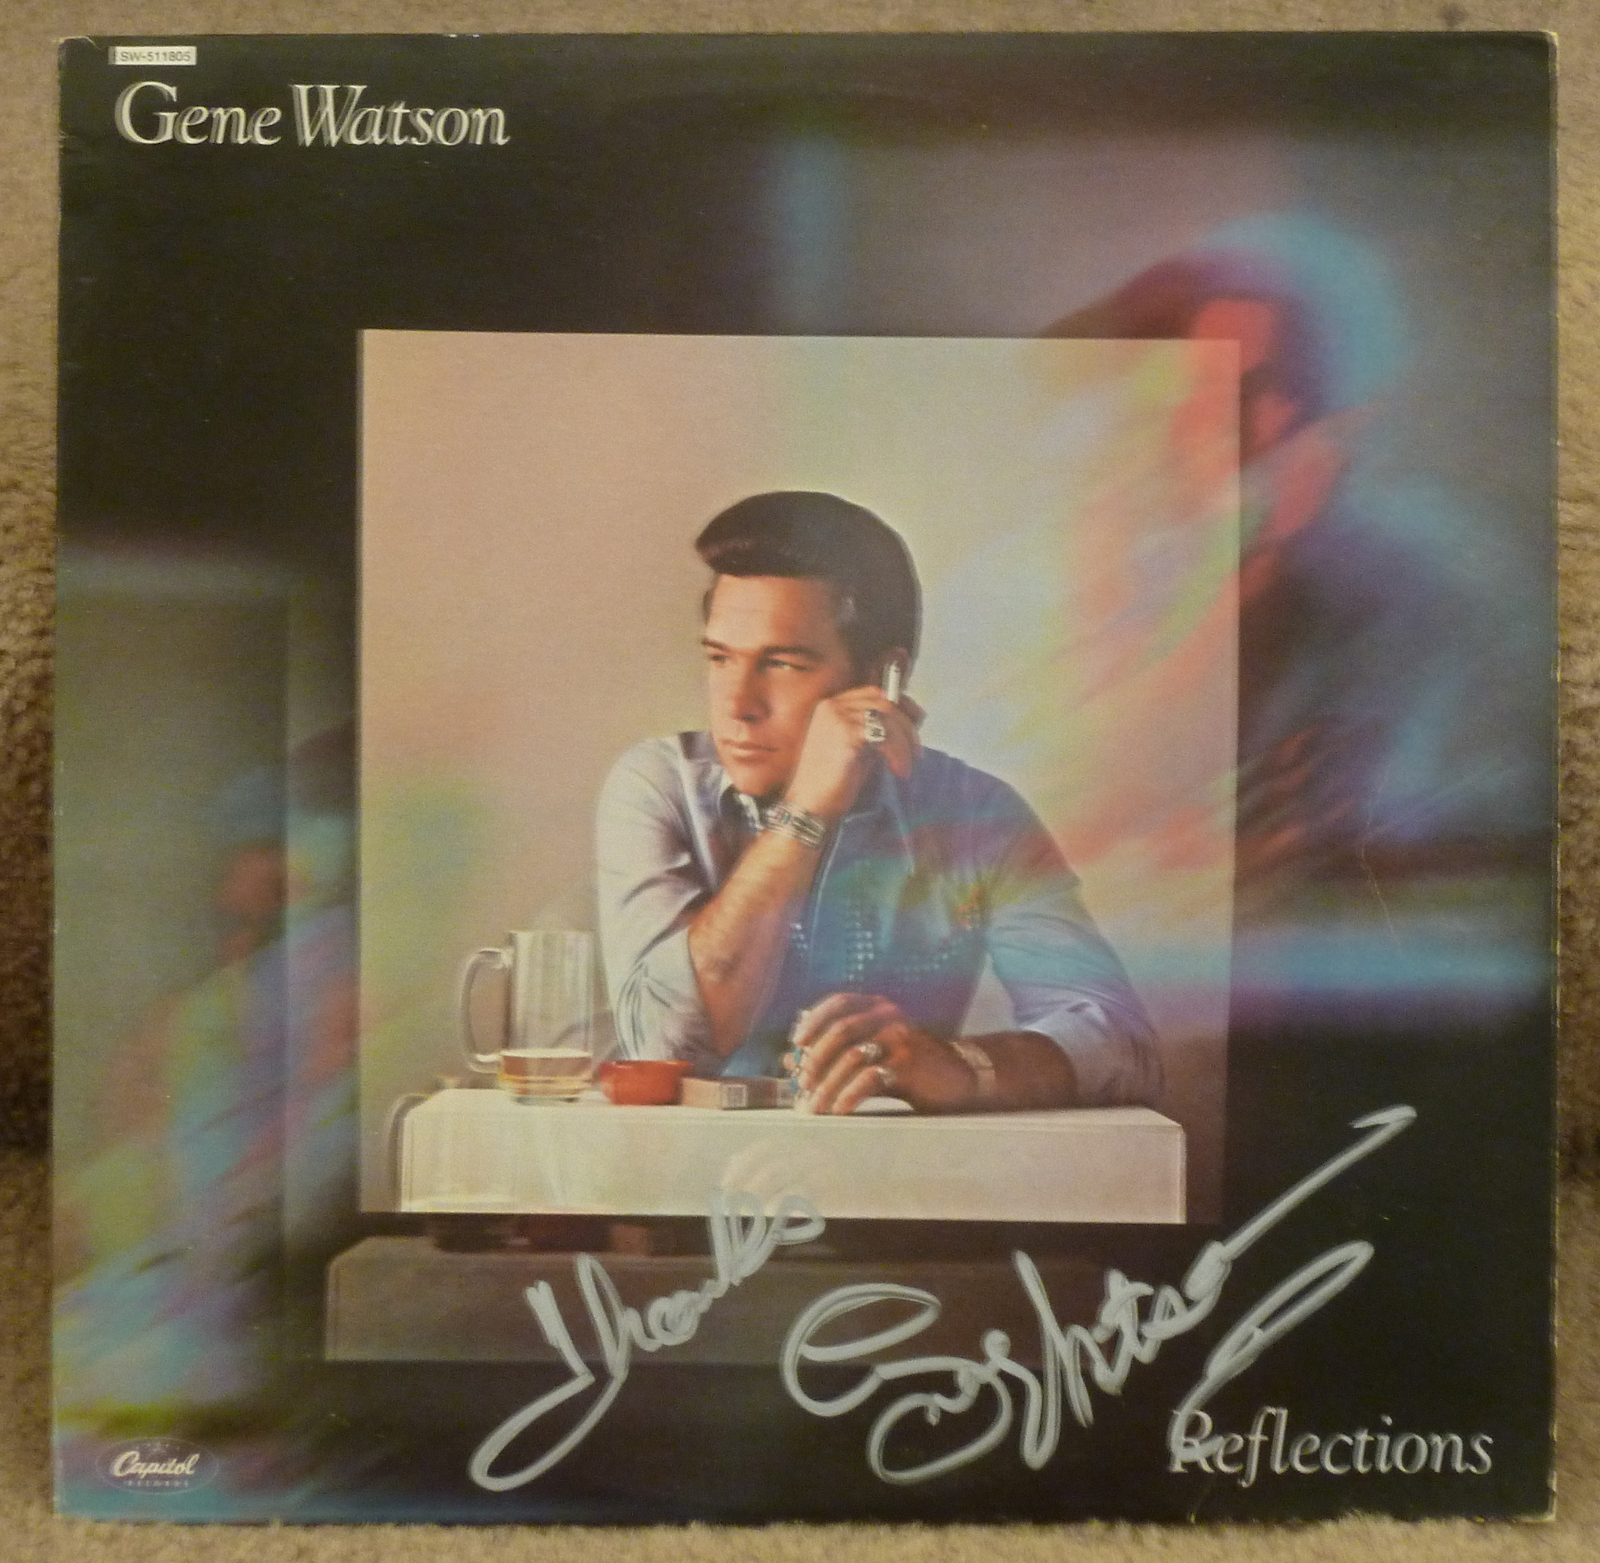 Gene Watson Reflections LP - Autographed Country Music Memorabilia